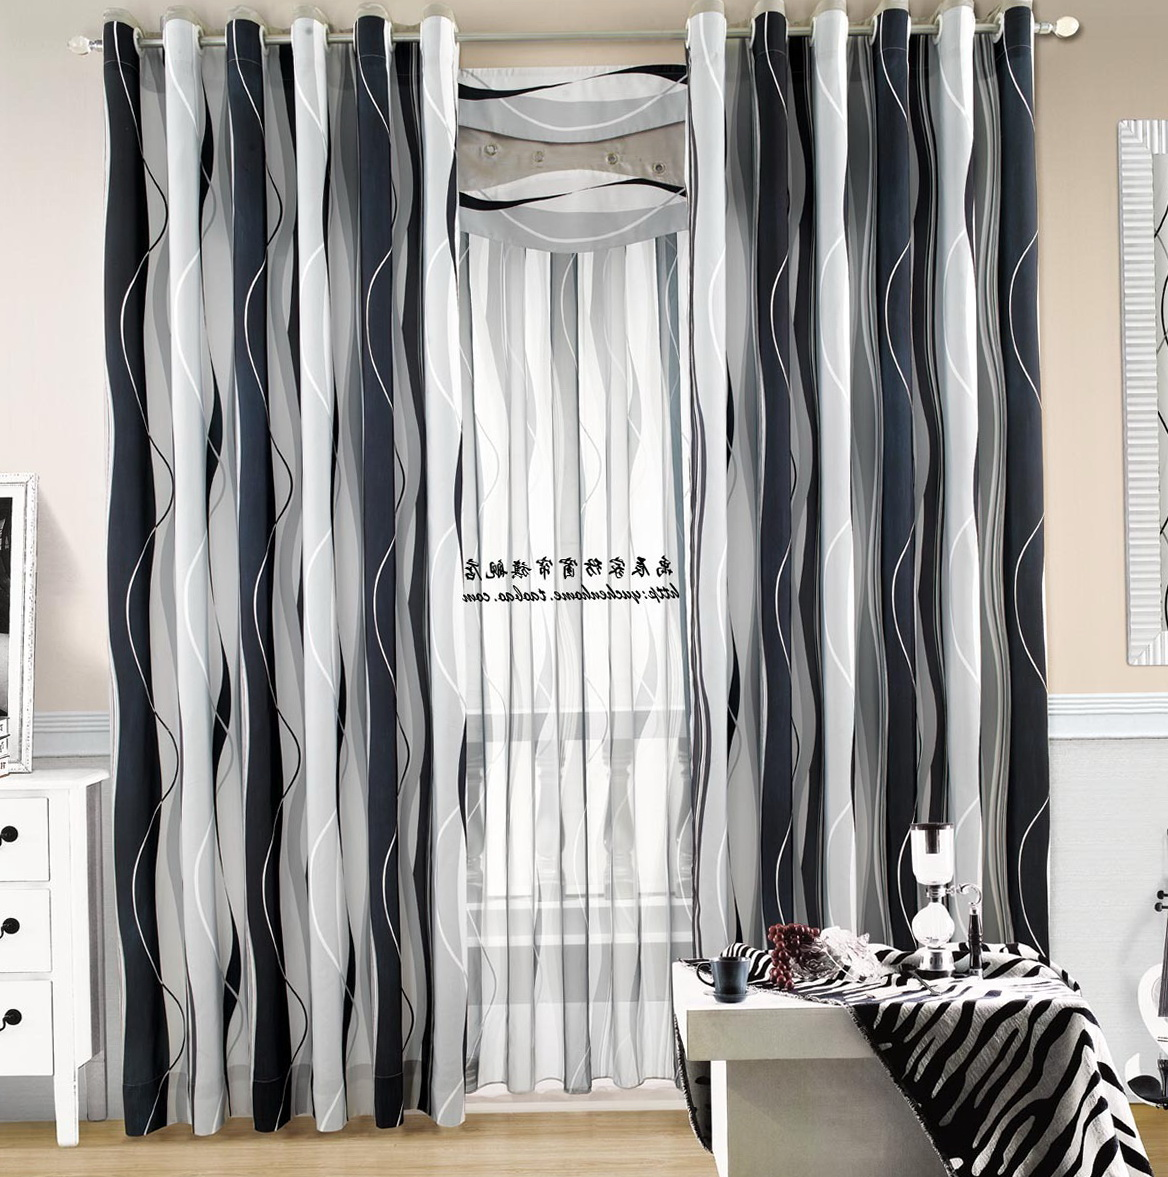 Black and white striped curtains home design ideas Black and white striped curtains